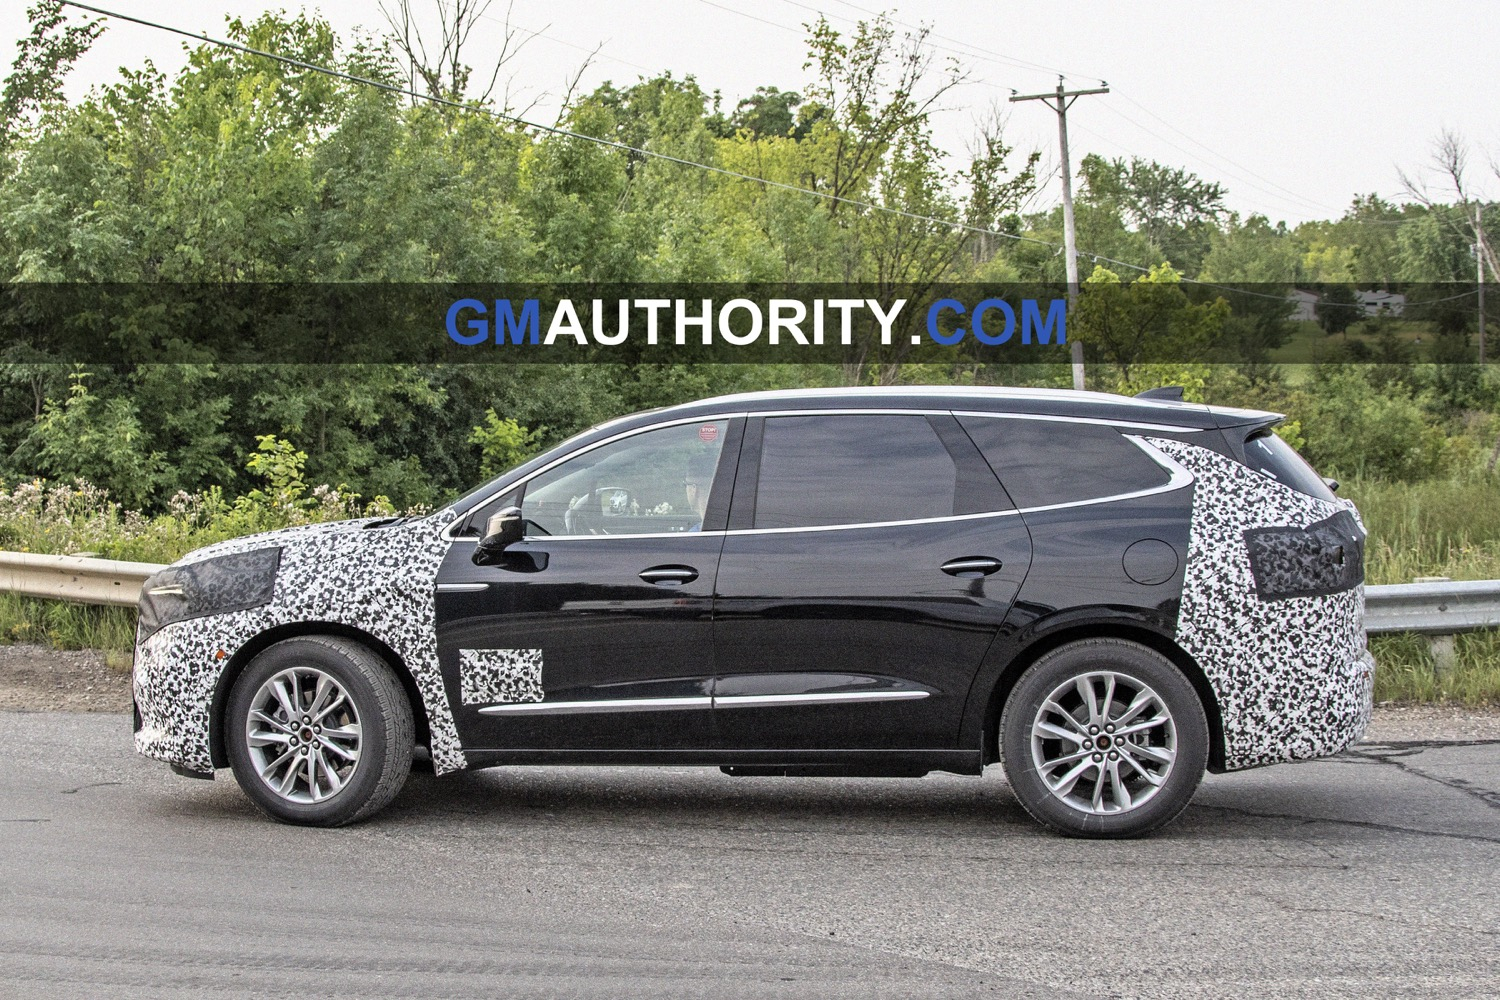 Buick Enclave Refresh Pushed Back To 2022 | Gm Authority 2022 Buick Enclave Build And Price, Cargo Space, Cost